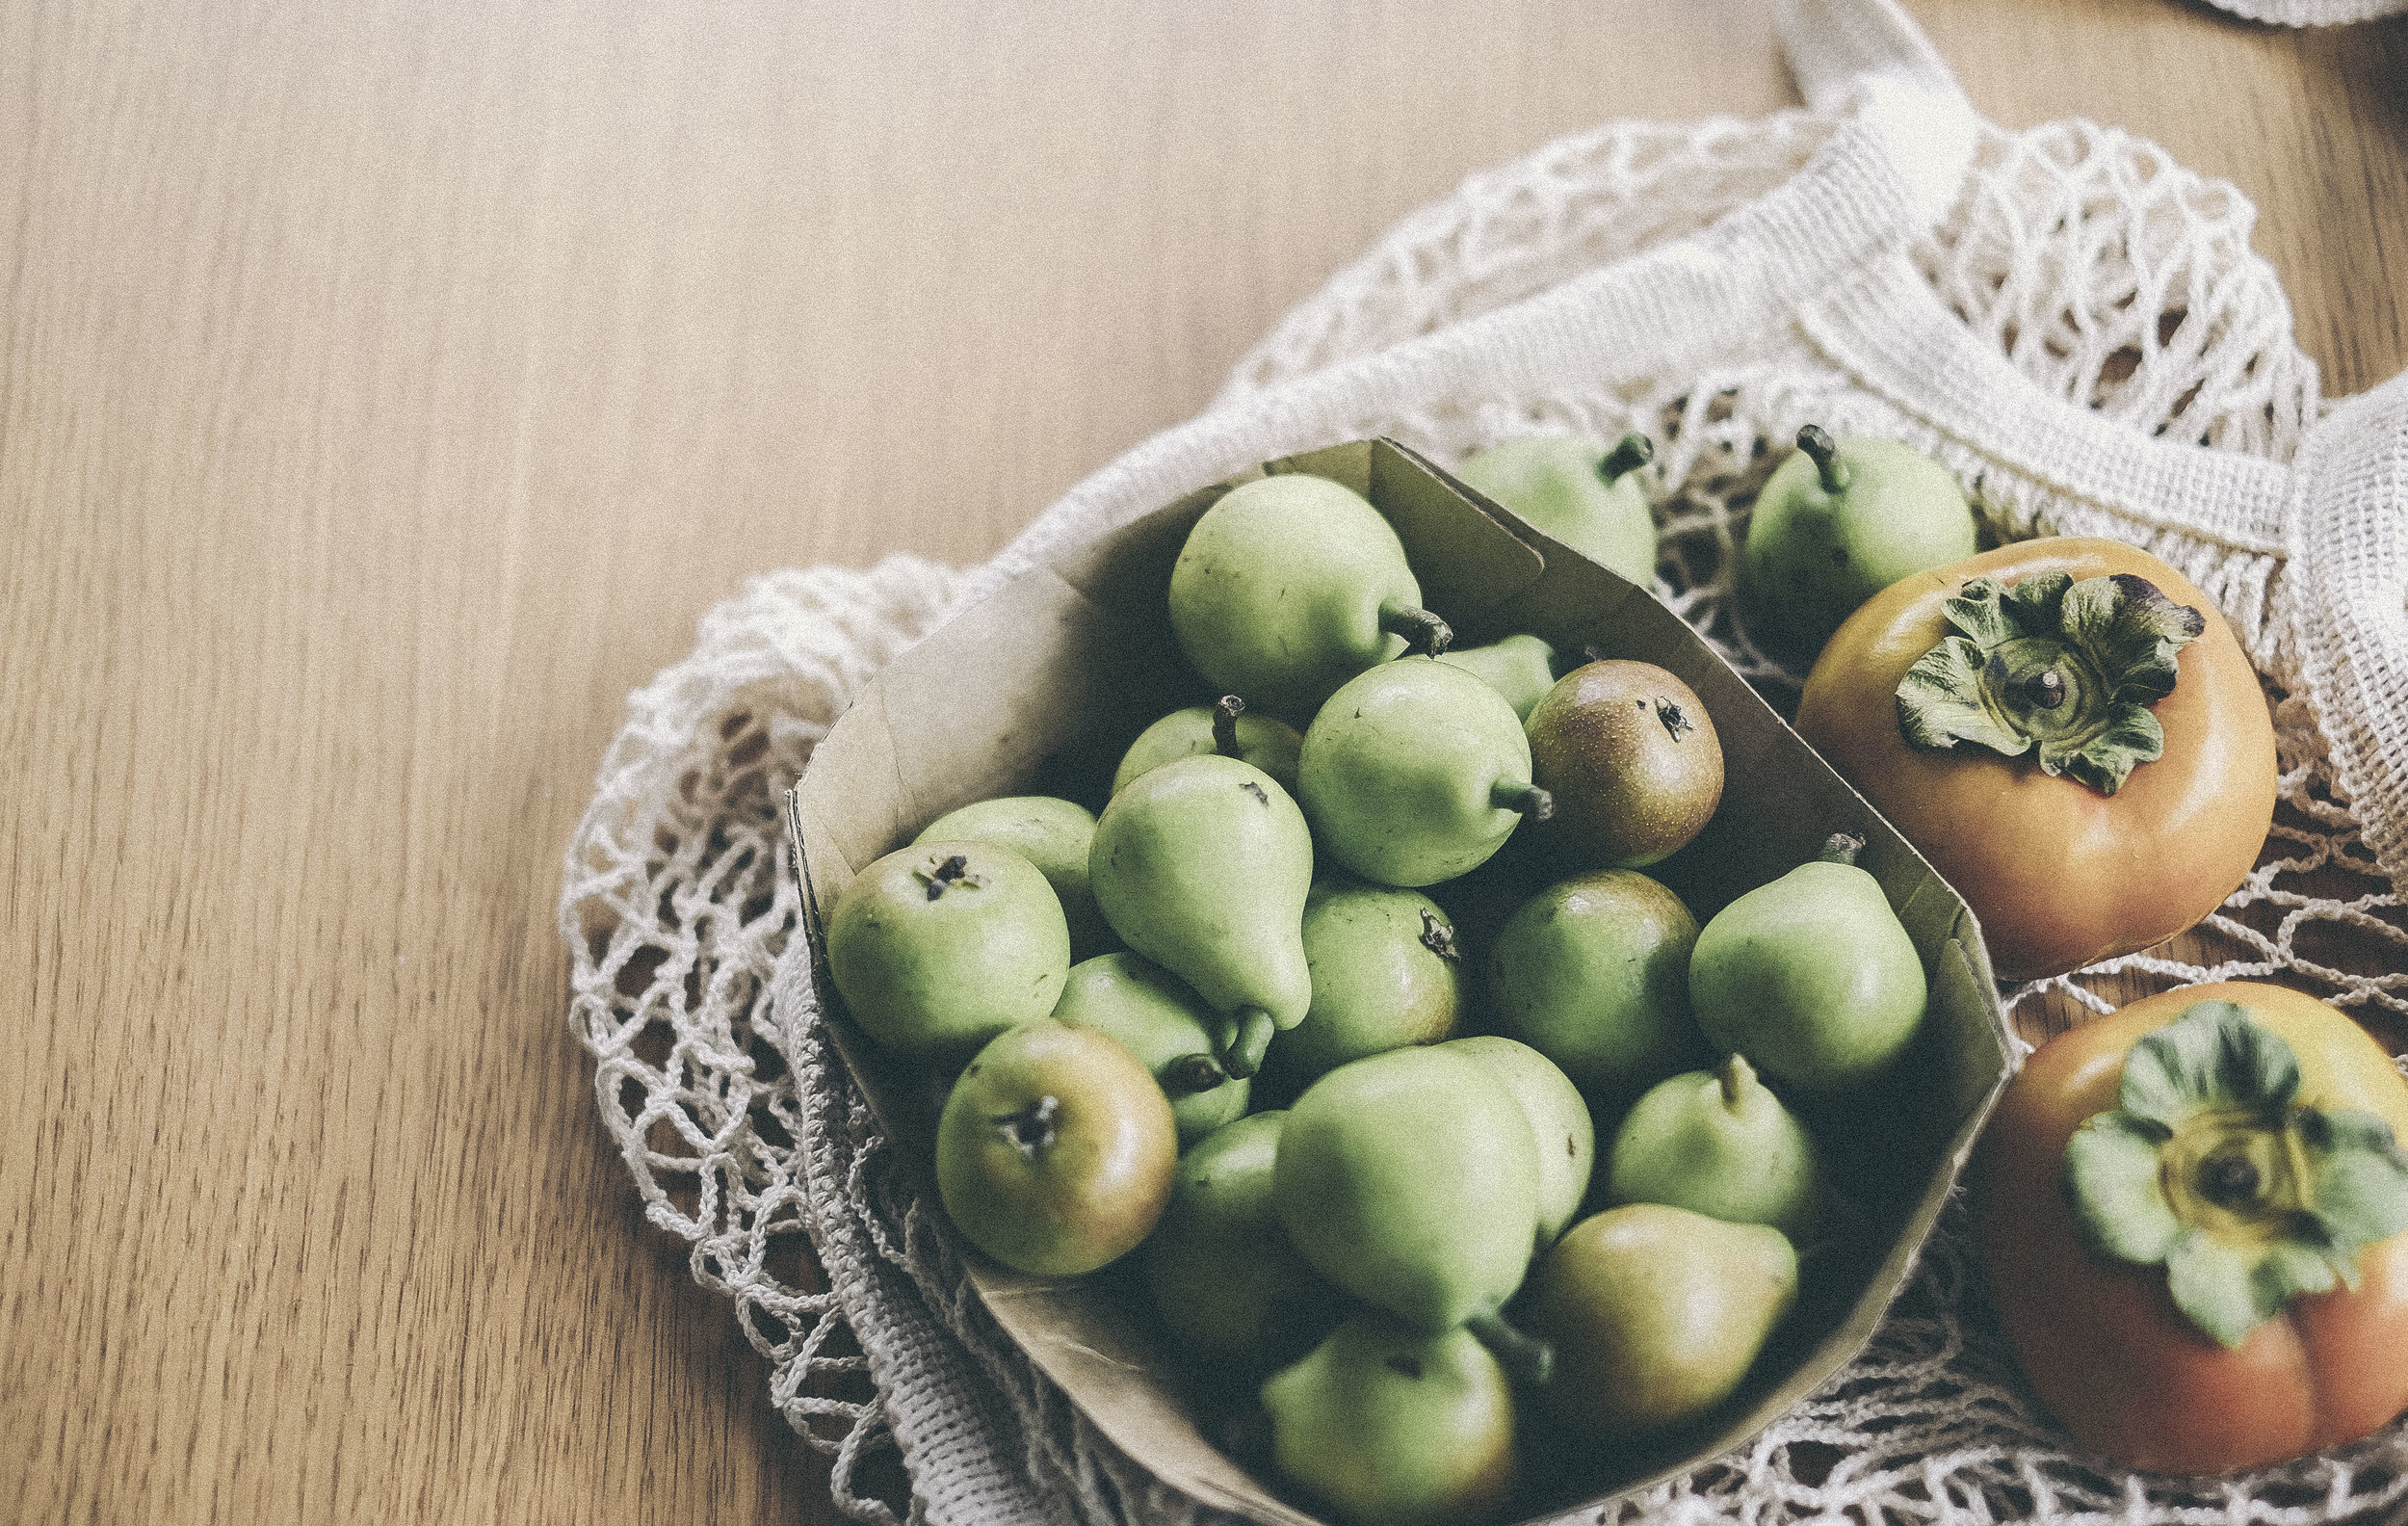 #PERSIMMONS AND #PEARS www.derrive.com #oragnic #fruit #vegetables #foodphotography #vegan #paleo #whole30 #vegetarian